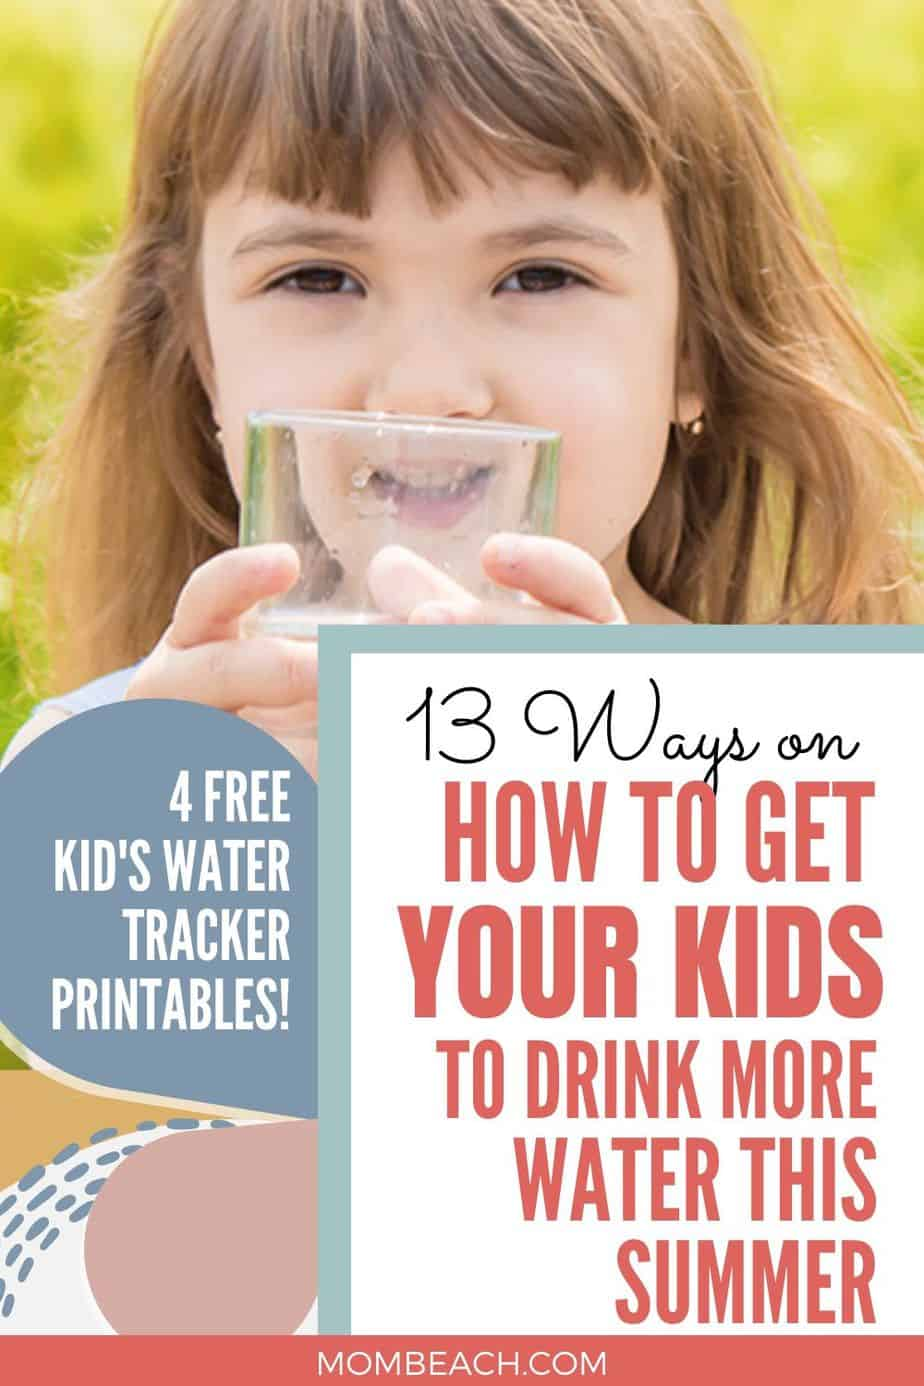 Getting kids to drink more water can be difficult. We share with you 13 tips on getting your child to drink more water so they won't be dehydrated. It is important for kids to get enough water! #howtogetkidstodrinkmorewater #kidsdrinkmorewater #tipsformoms #tipstodrinkmorewater #morewater